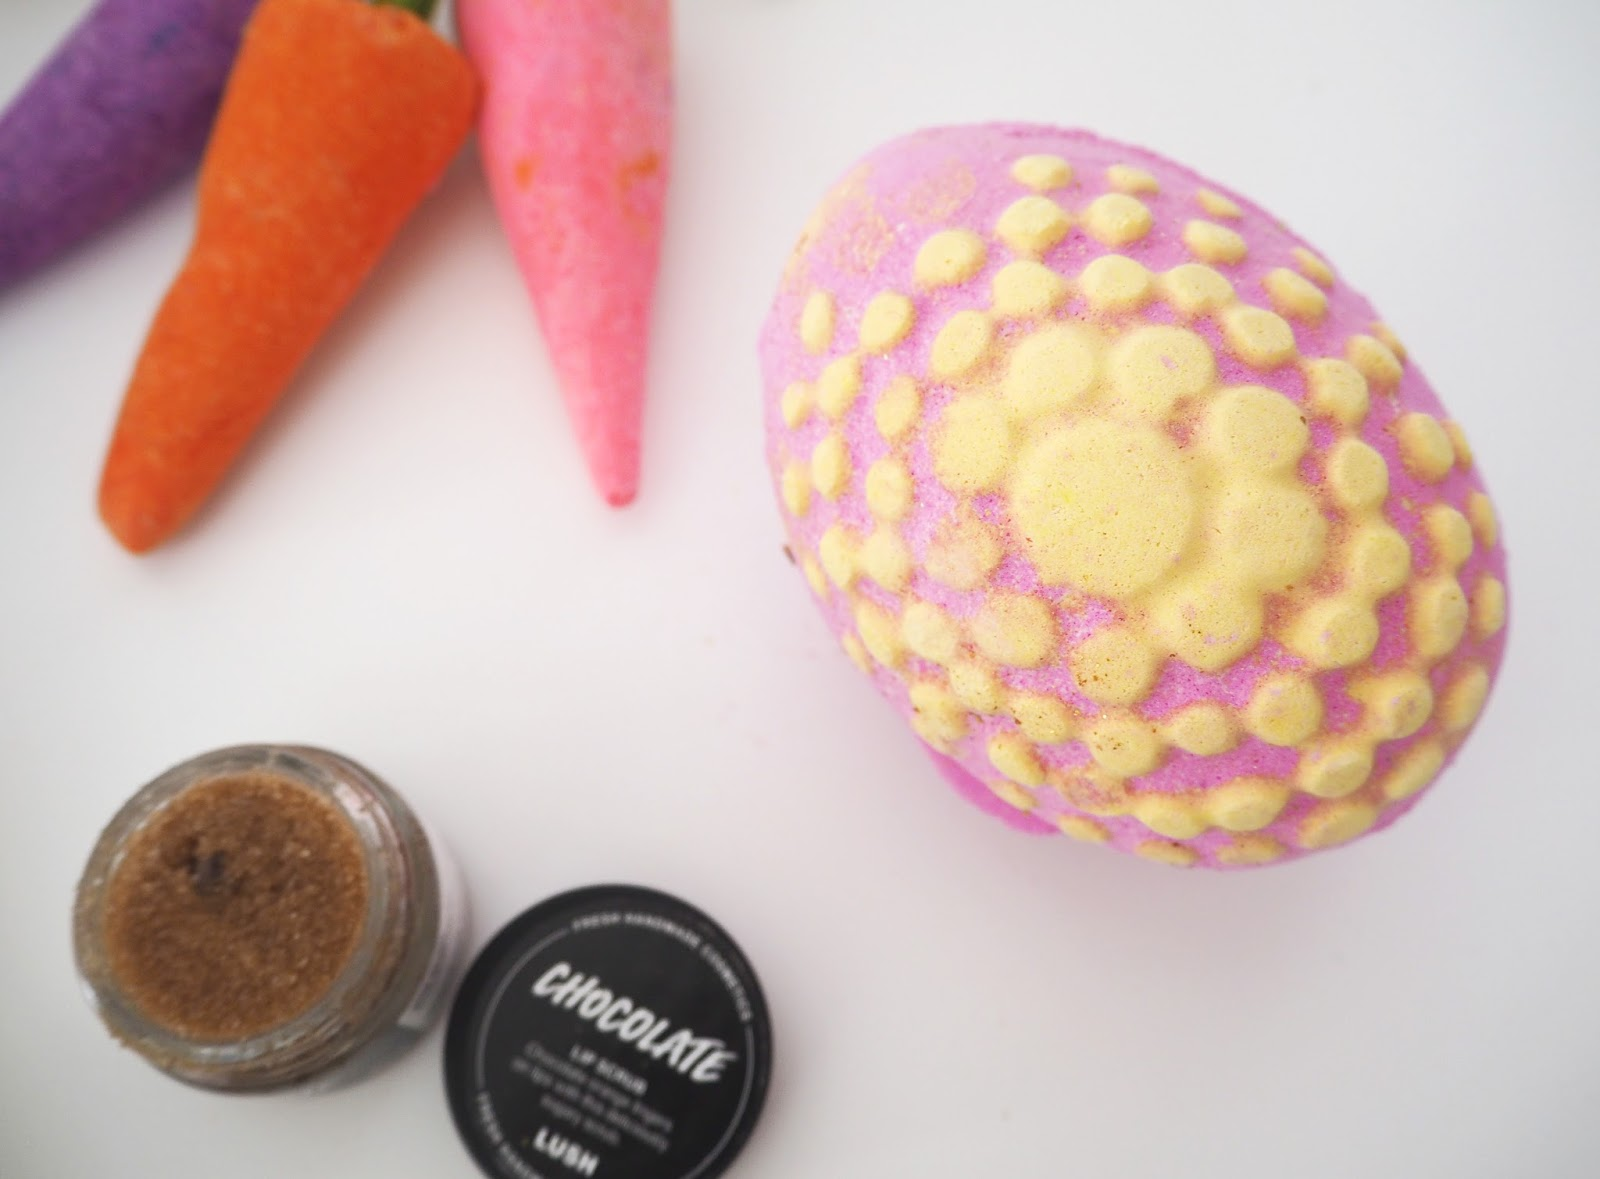 Lush Easter Collection 2017,  Katie Kirk Loves, Lush Cosmetics UK, Lush 2017, Beauty Blogger, UK Blogger, Gifts For Her, Easter Gifts, Gift Ideas, Lush Review, Lush Gifts, Bath & Body Products, Blogger Review